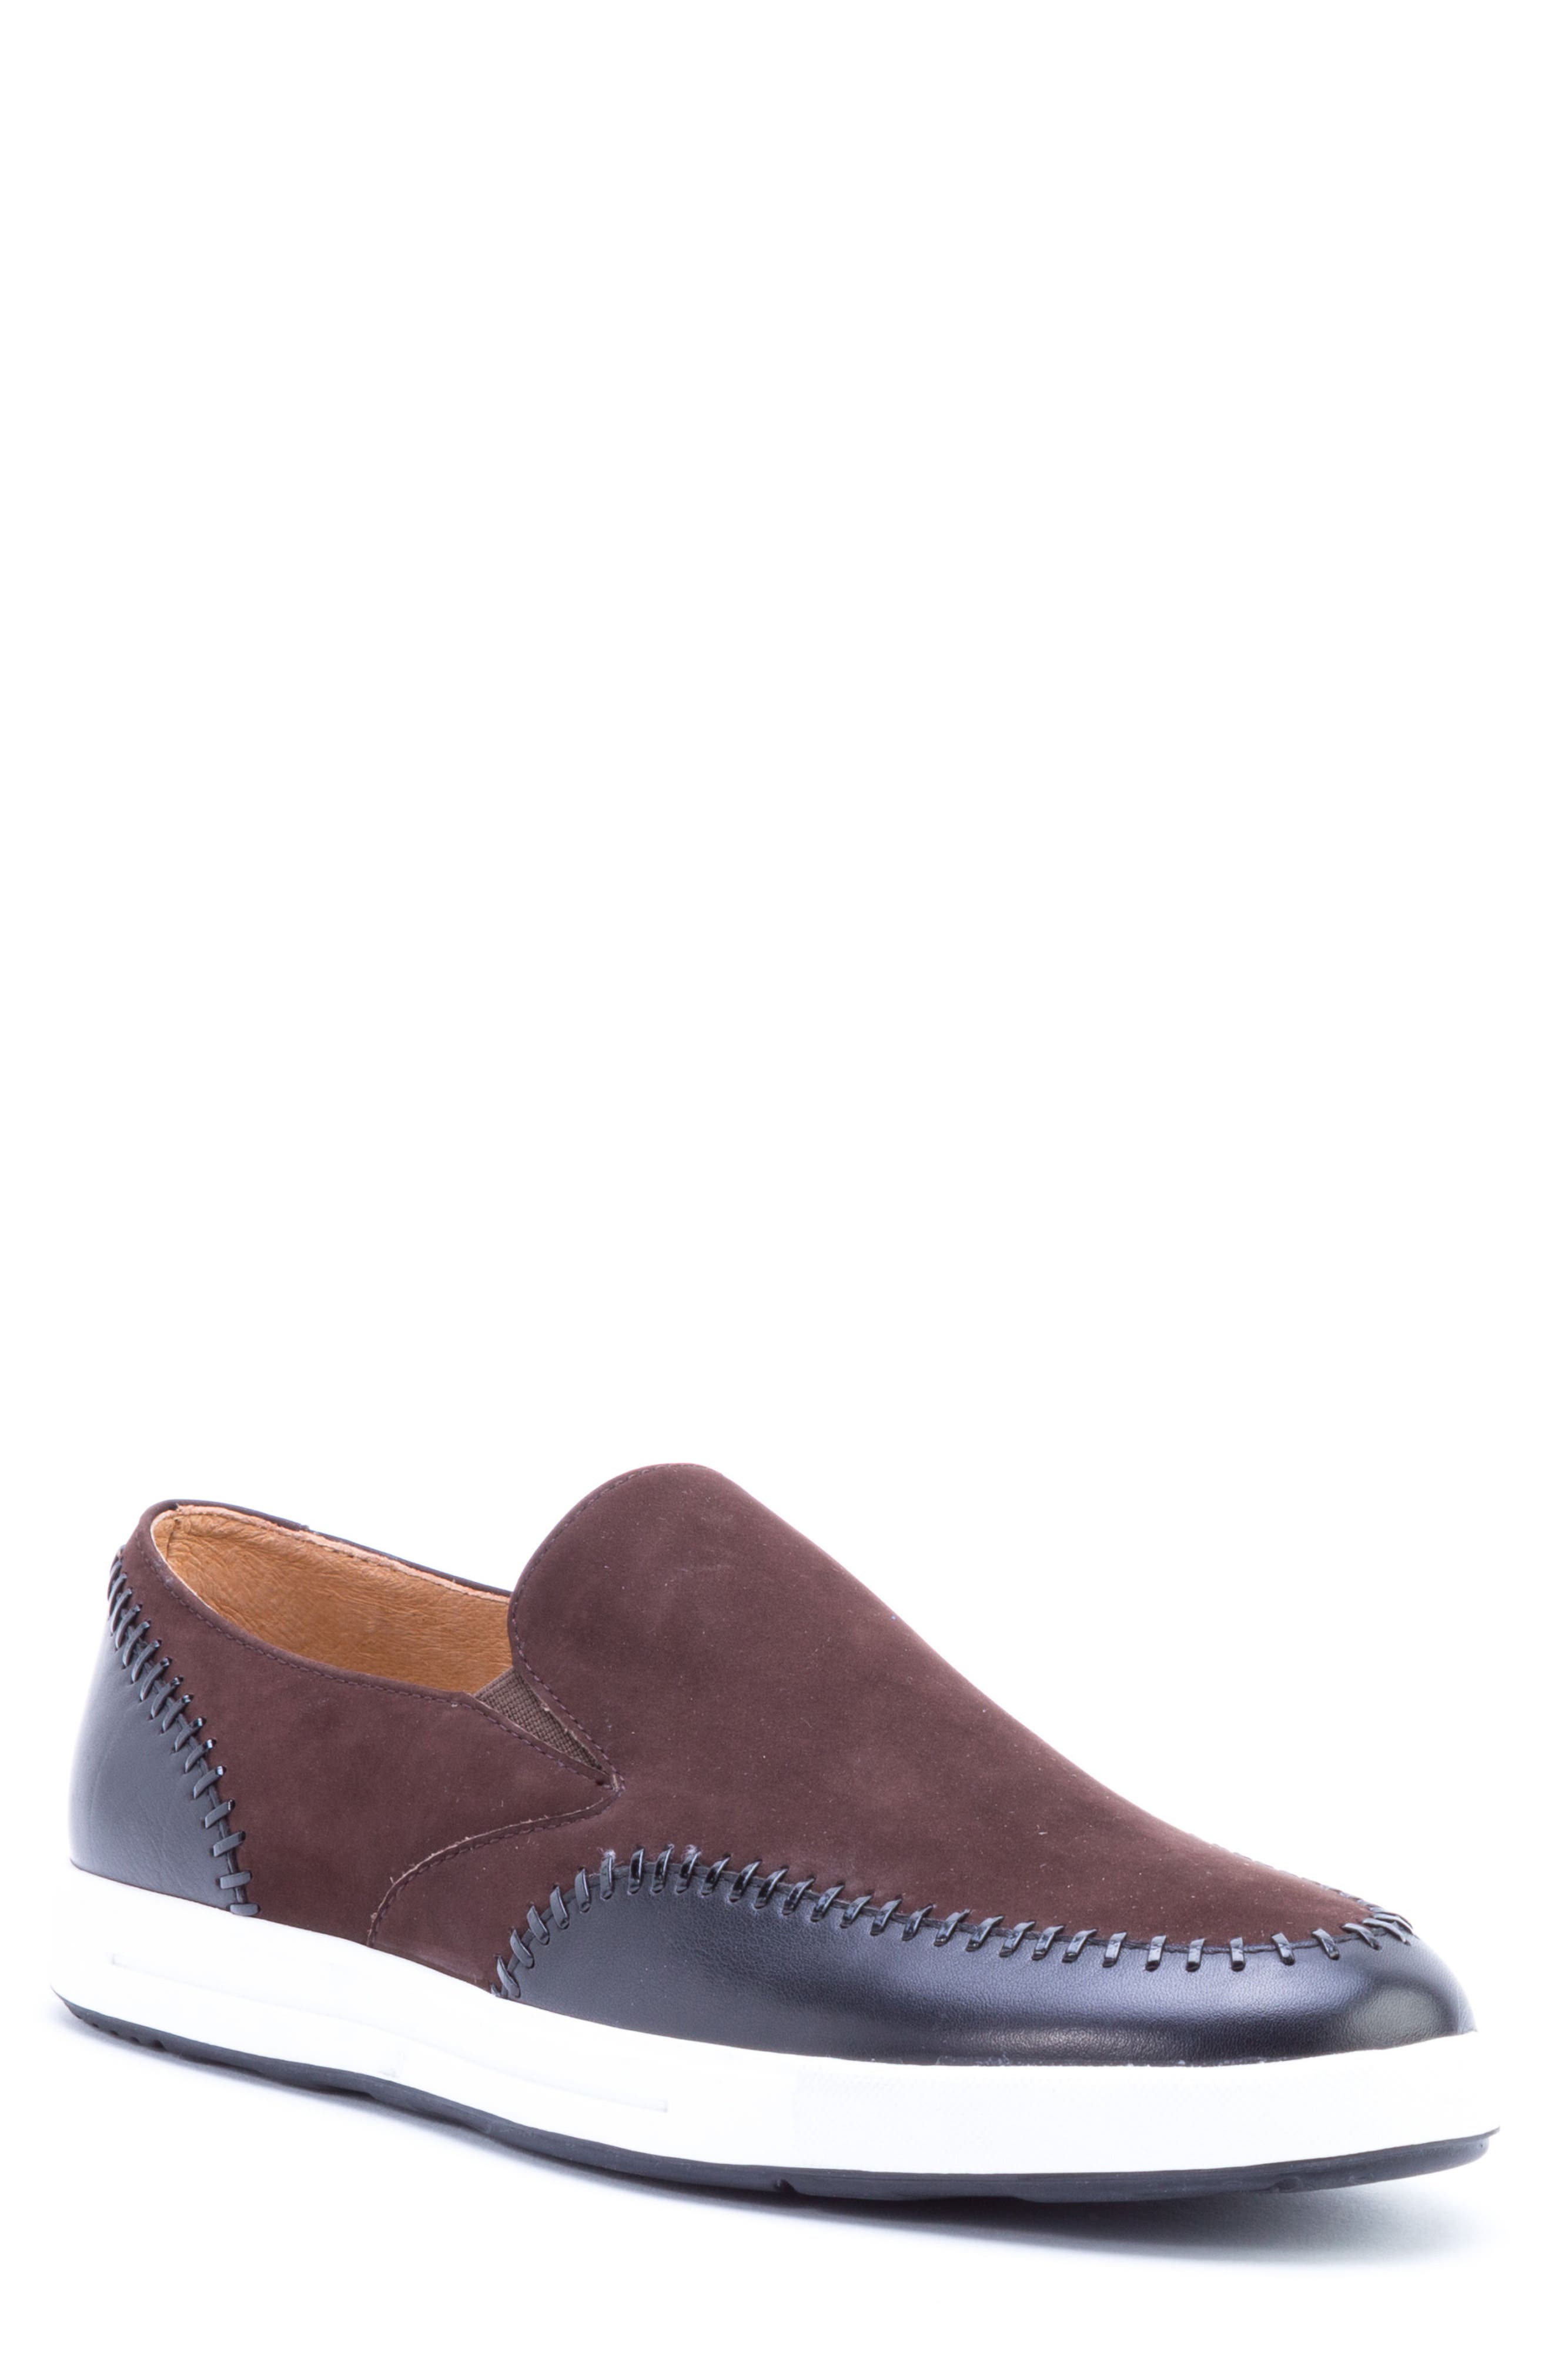 Caravaggio Whipstitched Slip-On Sneaker,                         Main,                         color, BROWN SUEDE/ LEATHER